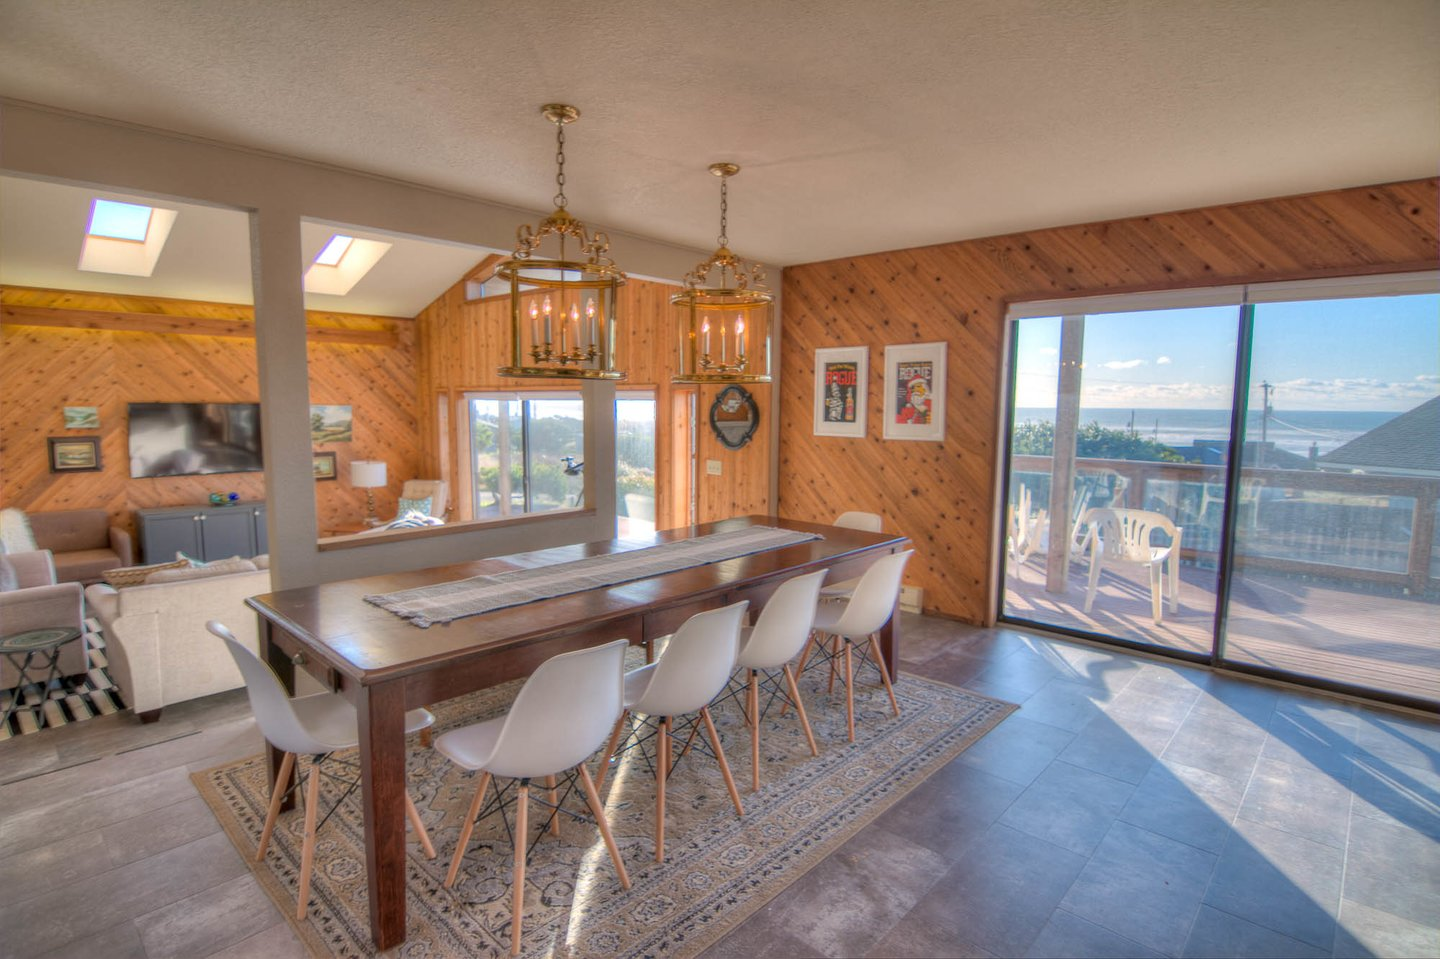 Open the sliding glass doors and let the outside in while dining on your favorite sea food!